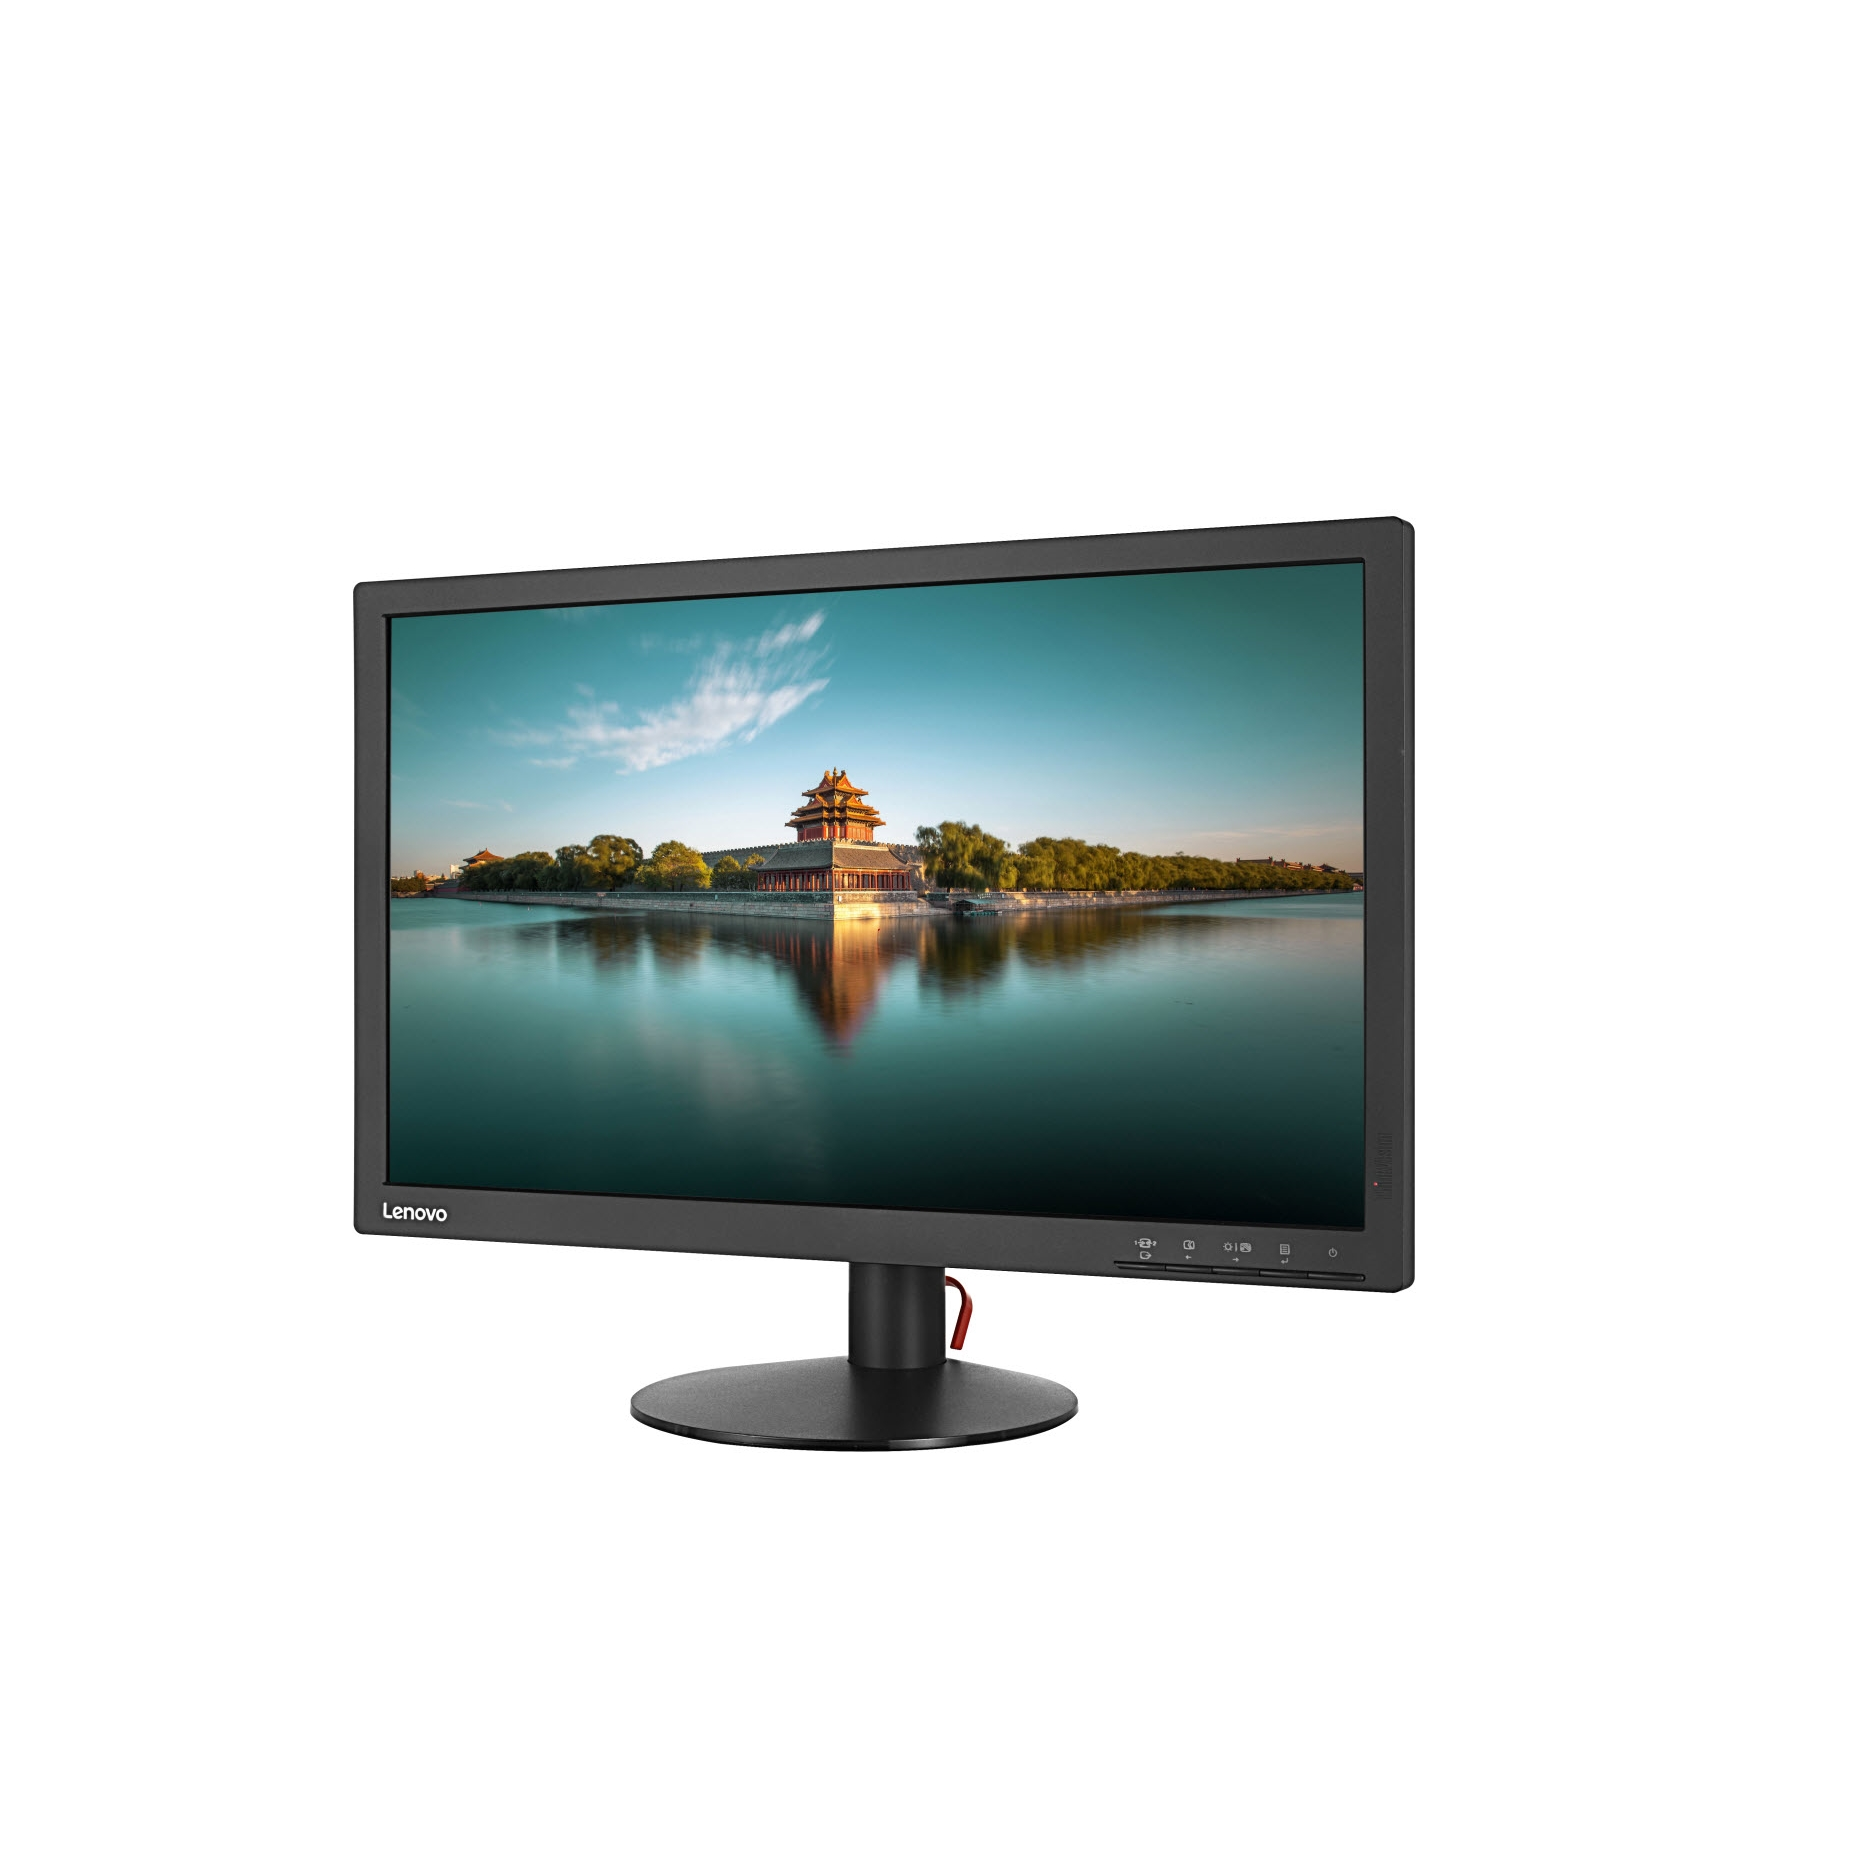 "LENOVO T2224D 61B1JAT1TK 21.5"" 7MS 1920x1080 VGA/DP FULL HD SİYAH LED MONITOR"